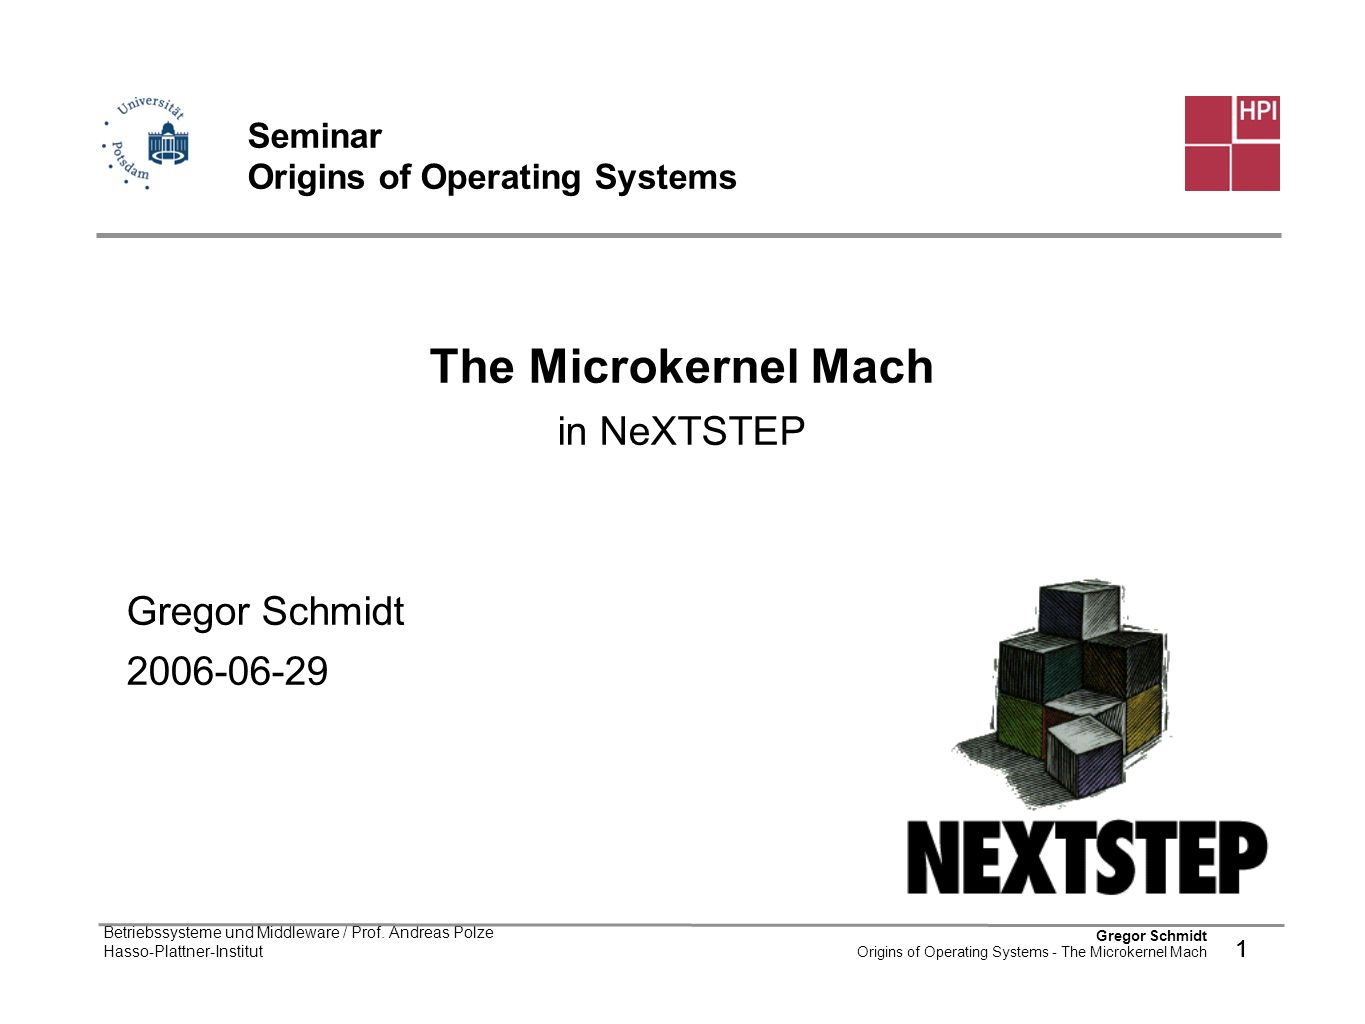 Seminar Origins of Operating Systems